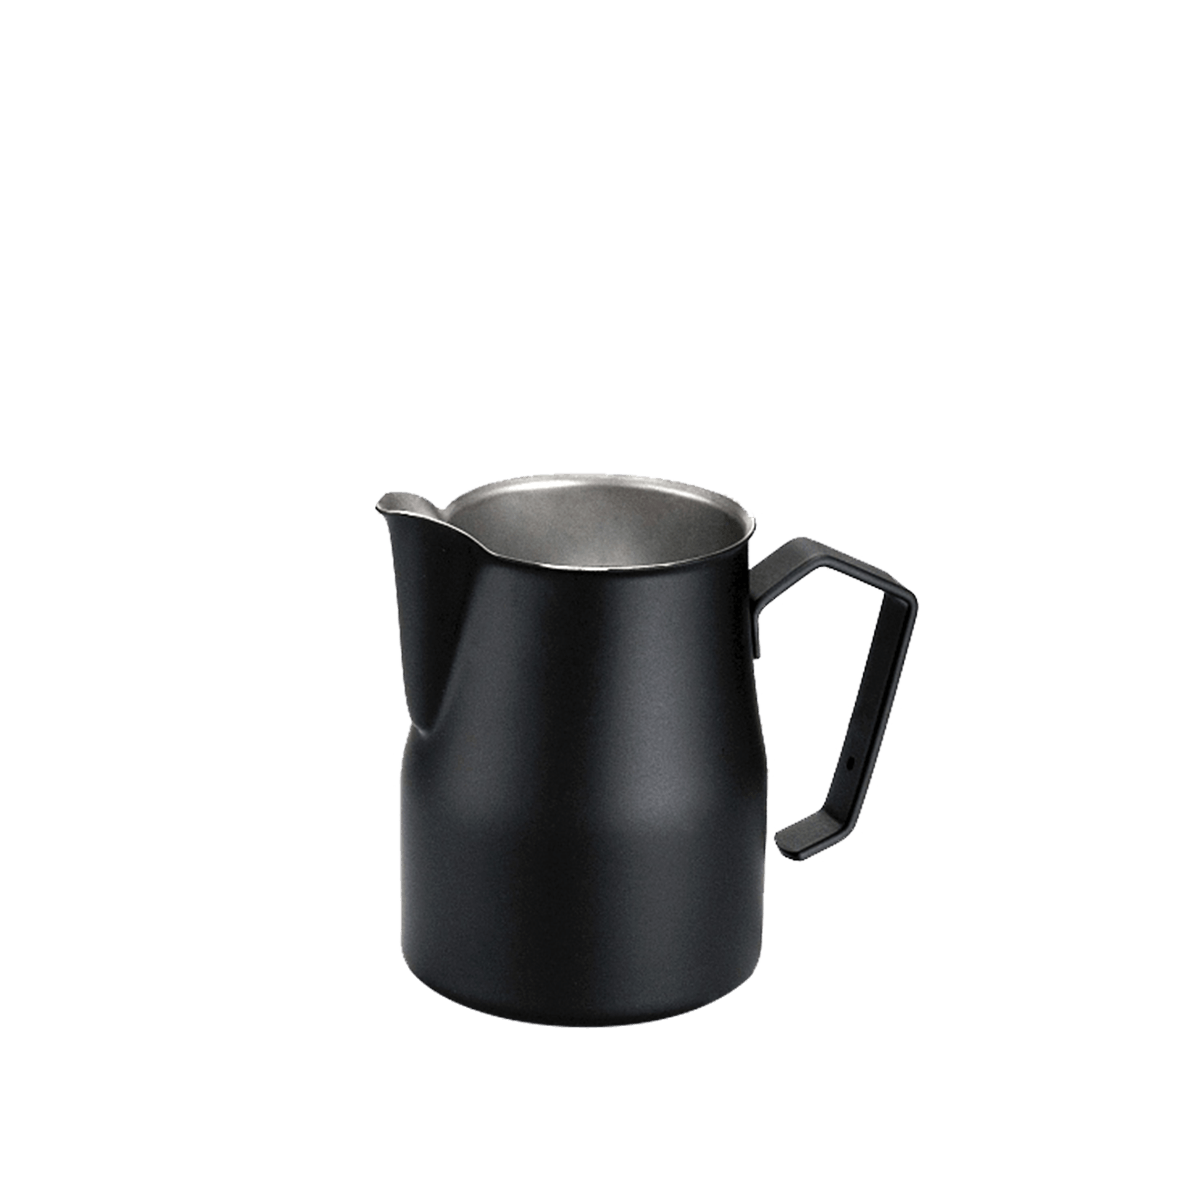 Teflon milk pitcher - Motta - Black